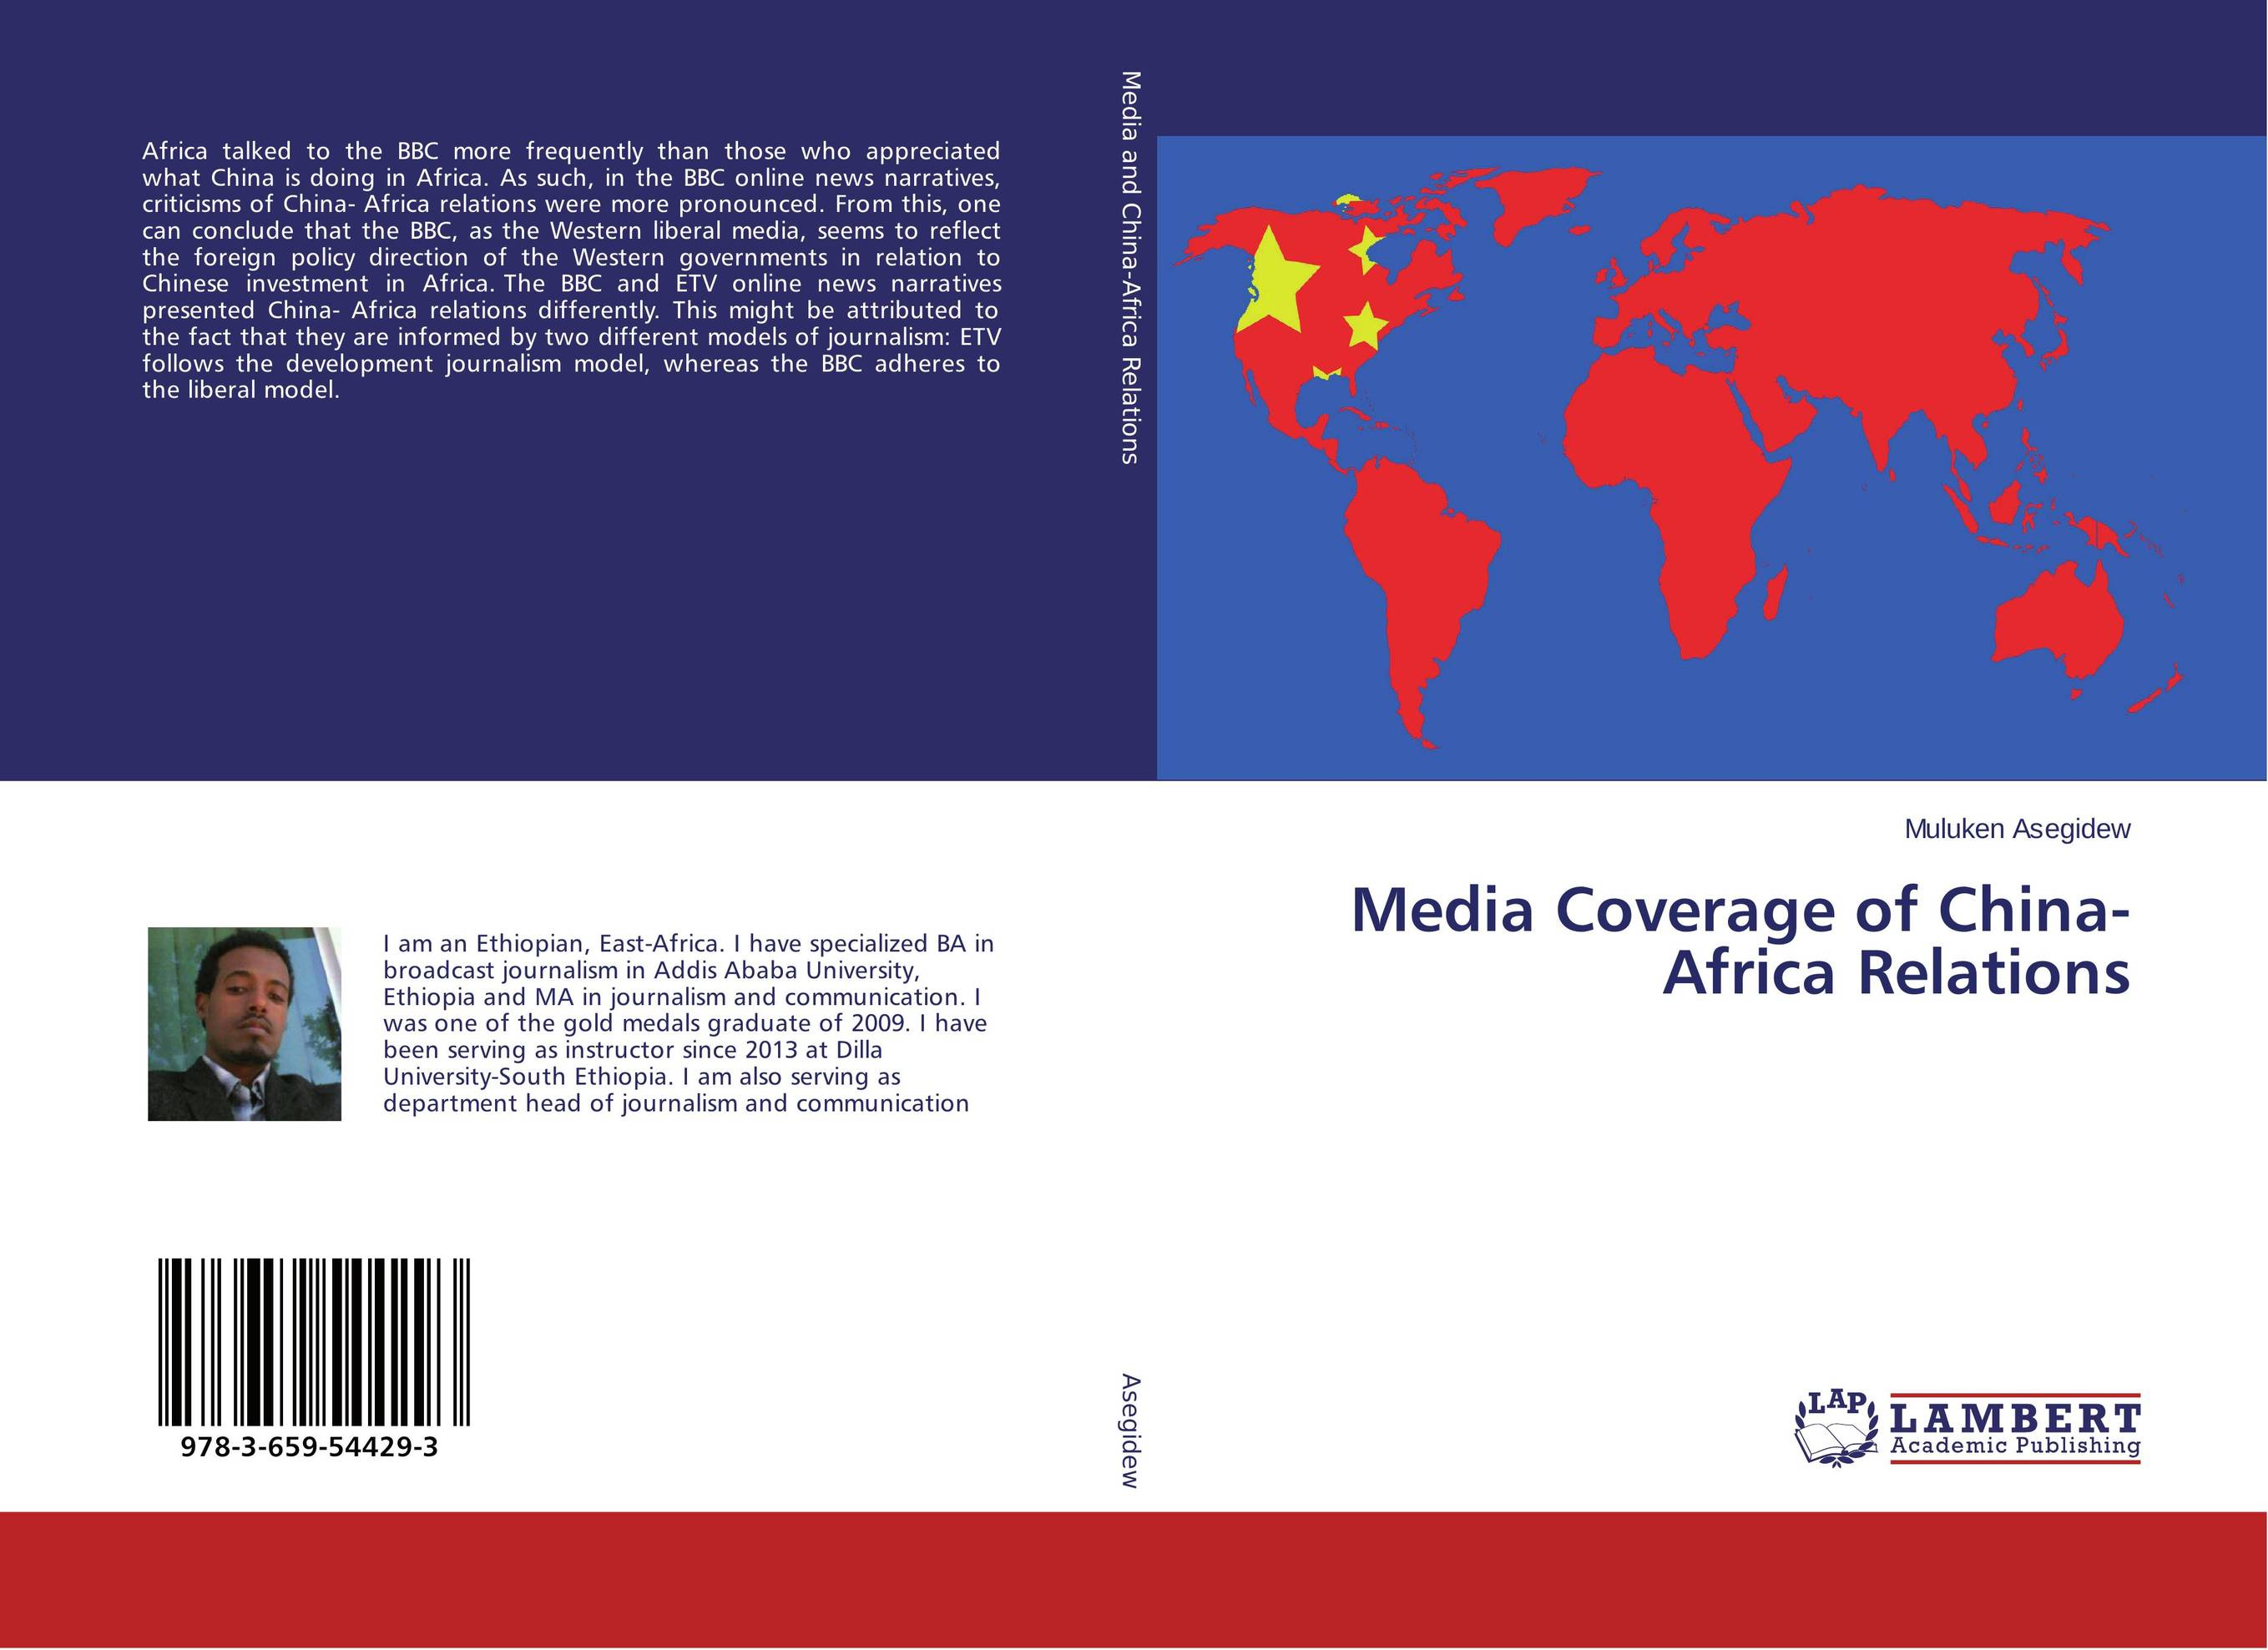 Media Coverage of China-Africa Relations doug young the party line how the media dictates public opinion in modern china